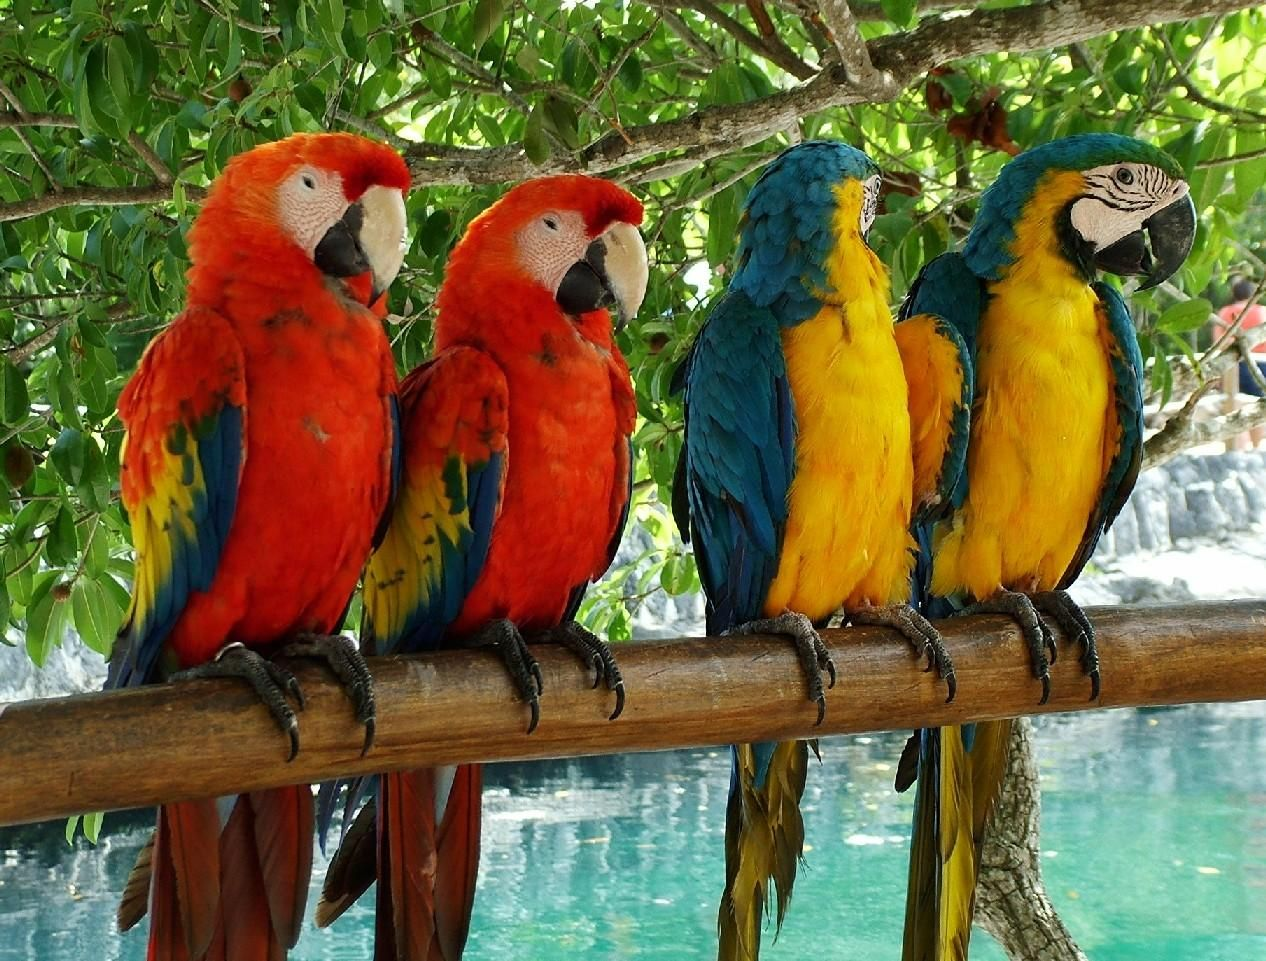 parrots parrots, also known as psittacines, are birds of the